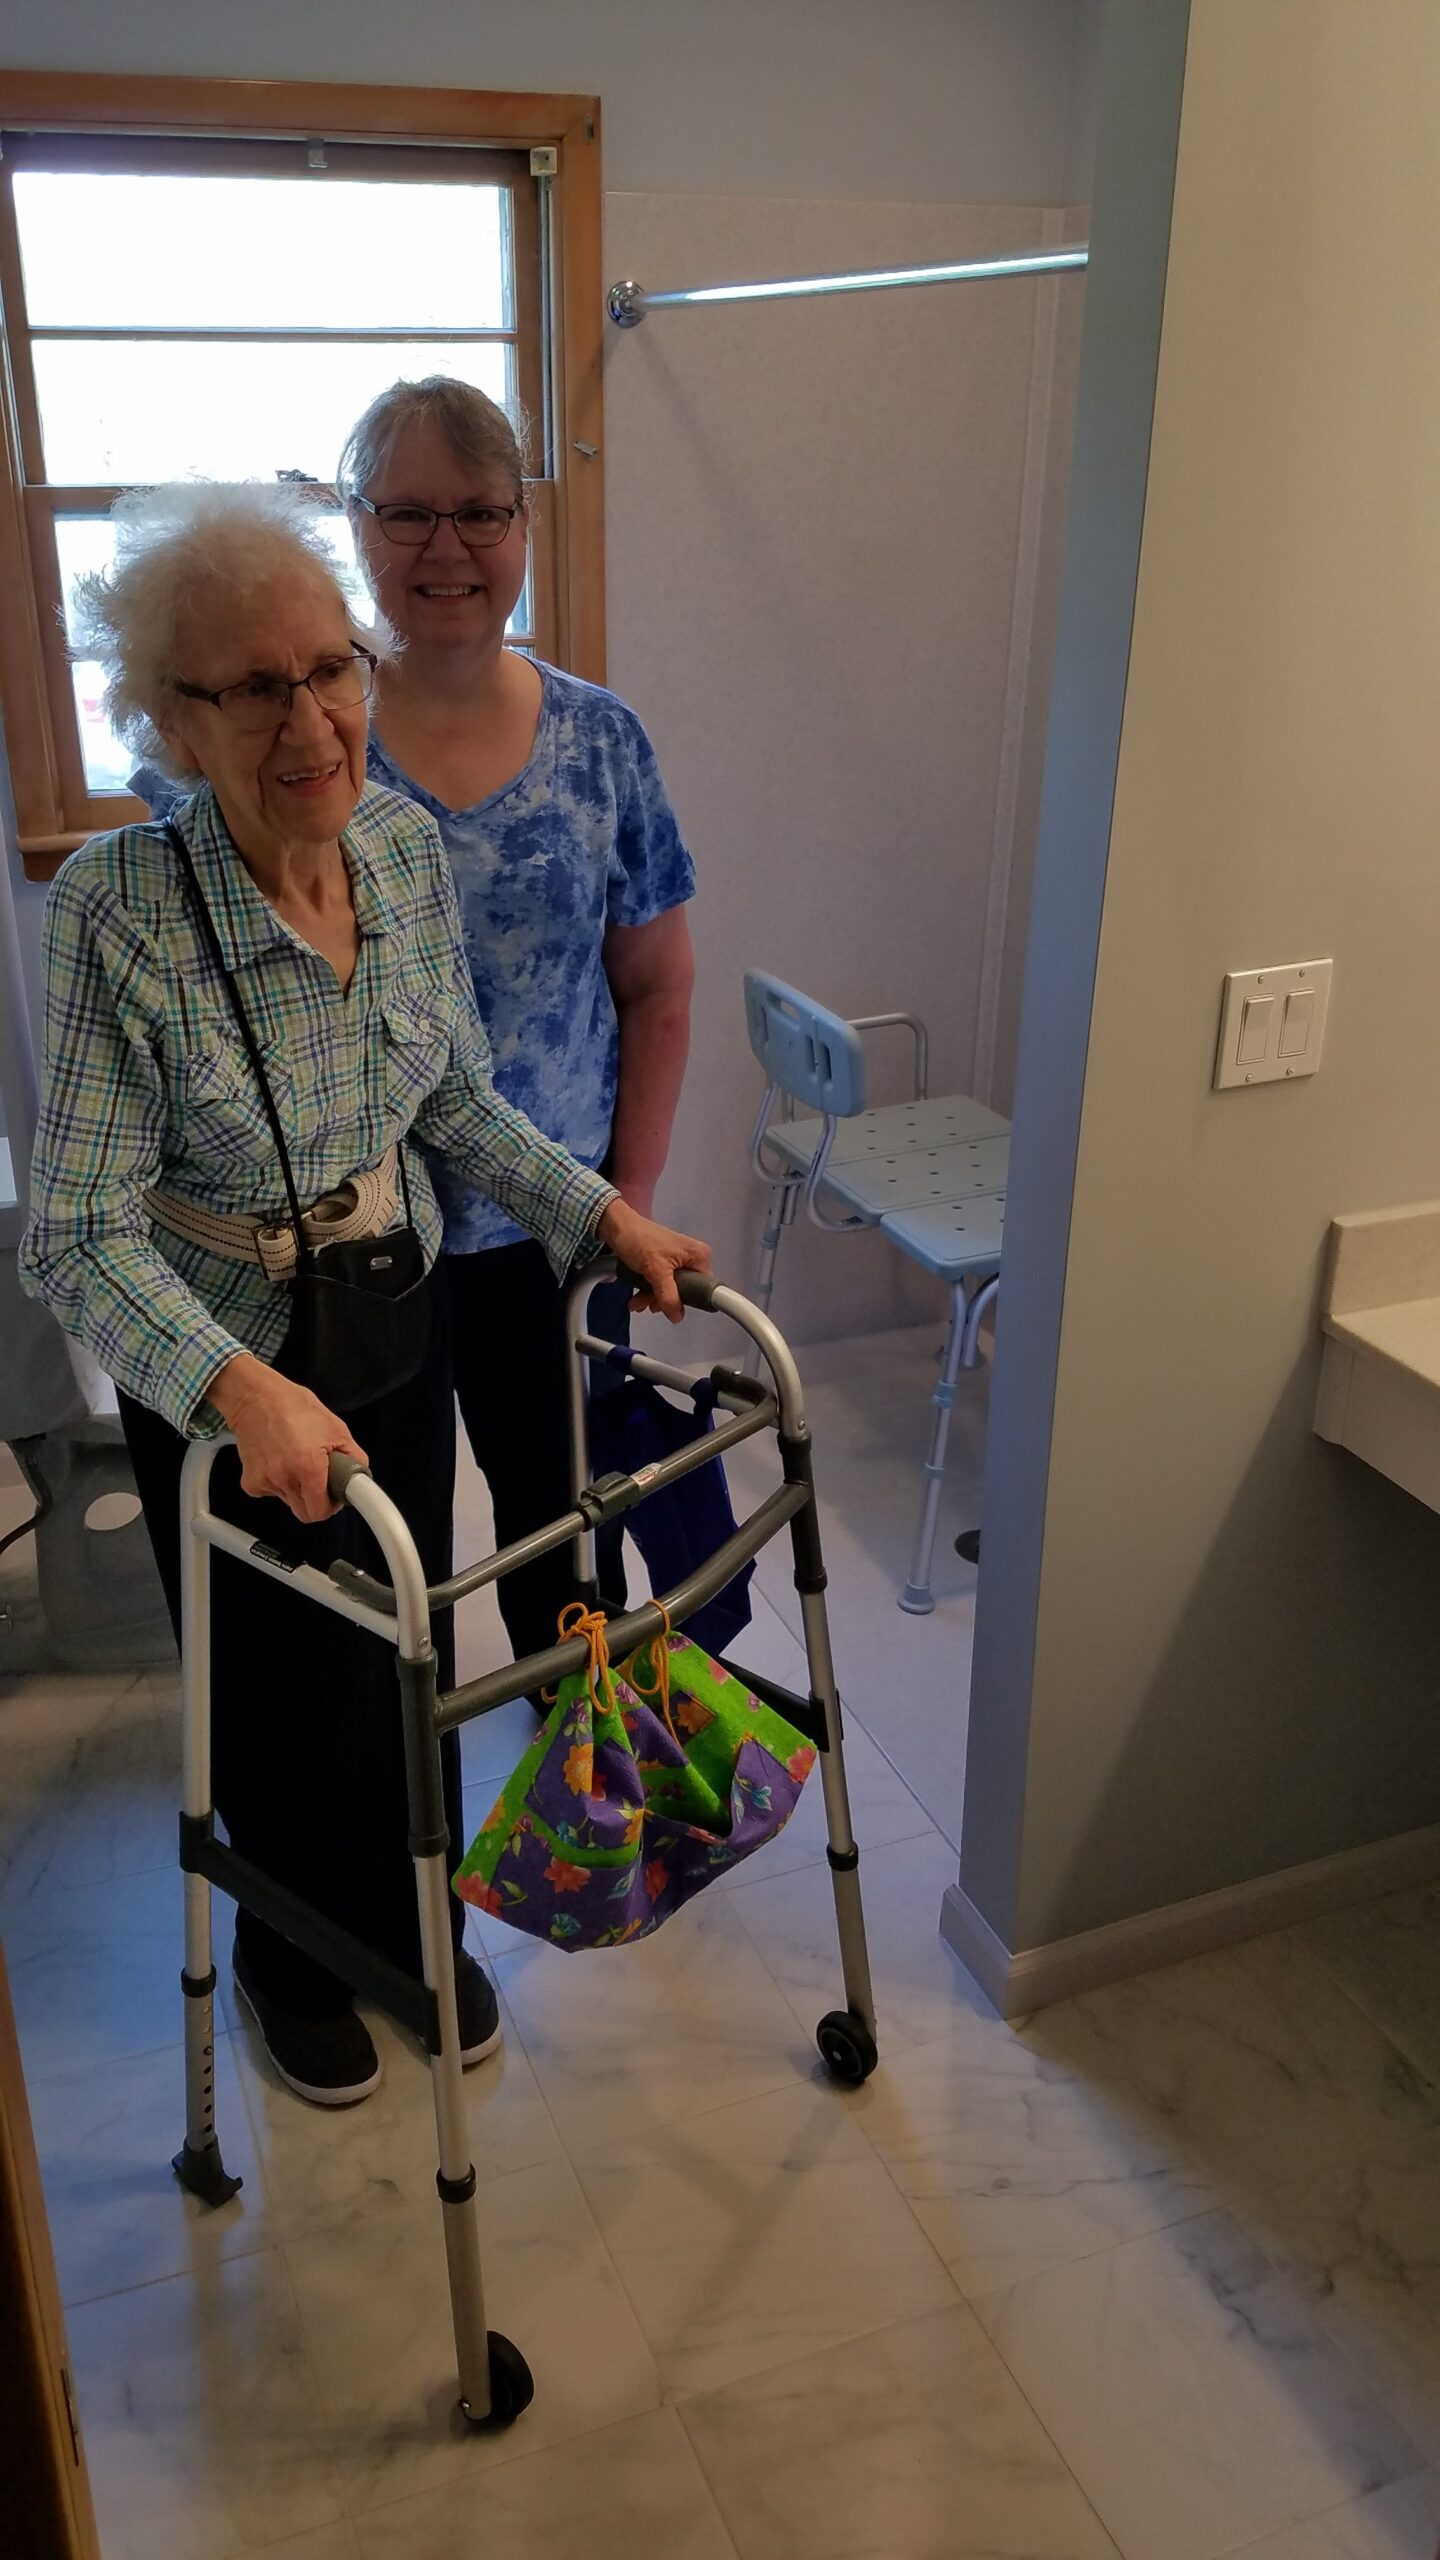 Photo: Mrs. Fullerton with her mom checking out her new shower